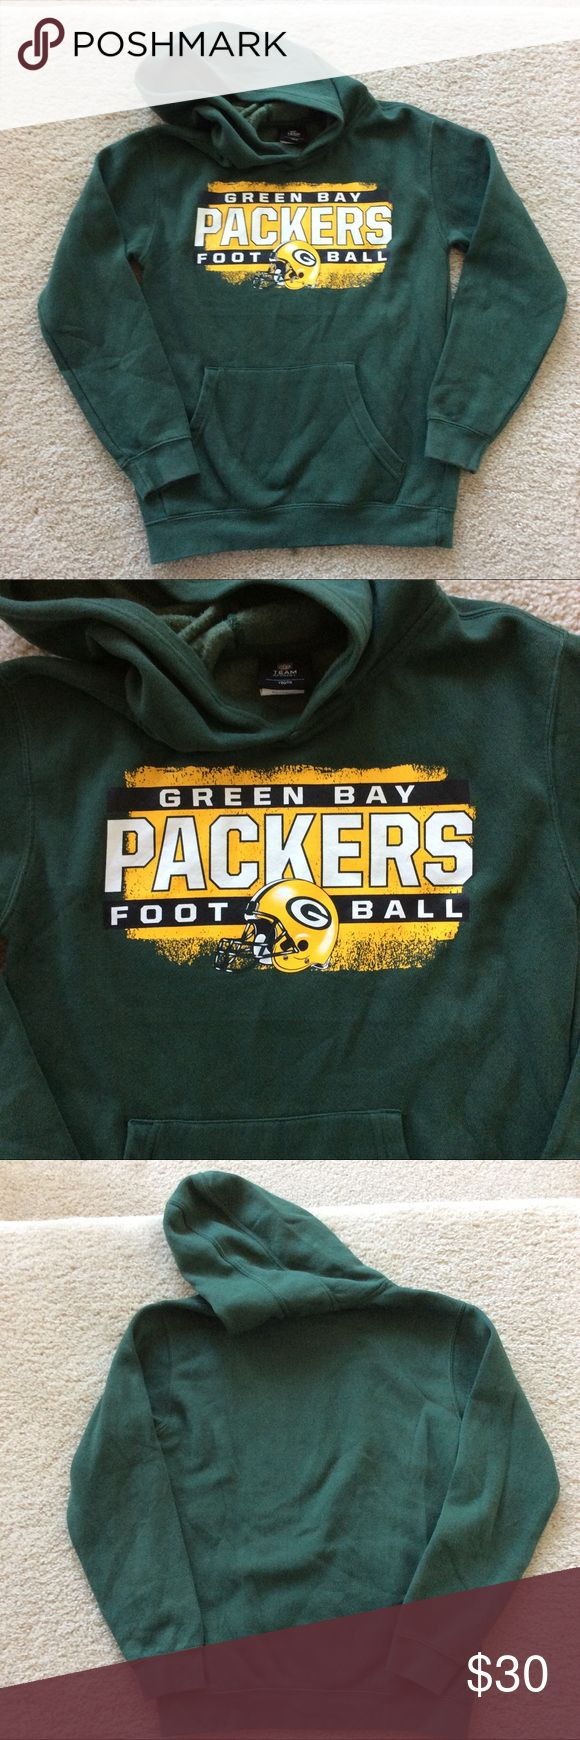 """NFL Team Apparel Green Bay Packers Hoodie NFL Team Apparel Green Bay Packers Hoodie. Front pouch pockets. Long sleeves. Laying flat approx 23.5"""" shoulder to hem, approx 17.5"""" pit to pit. 70 cotton 30 polyester. Size M (10-12). Excellent condition. #d15 NFL Team Apparel Shirts & Tops Sweatshirts & Hoodies"""